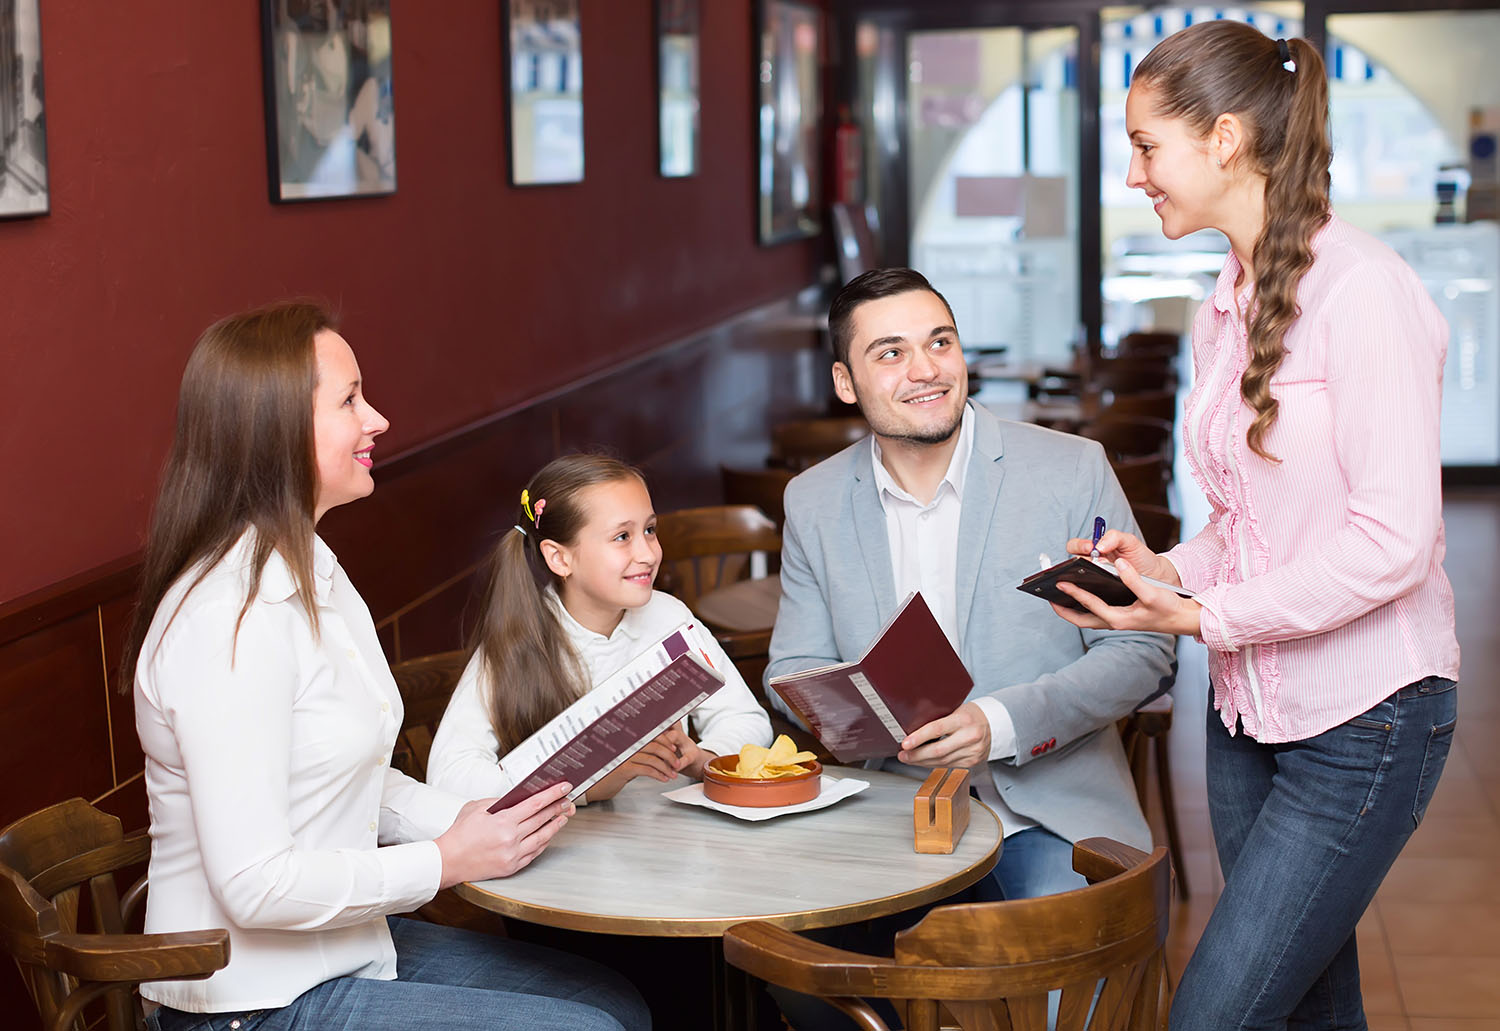 Smiling waitress taking an order from a family of 4 in a restaurant.